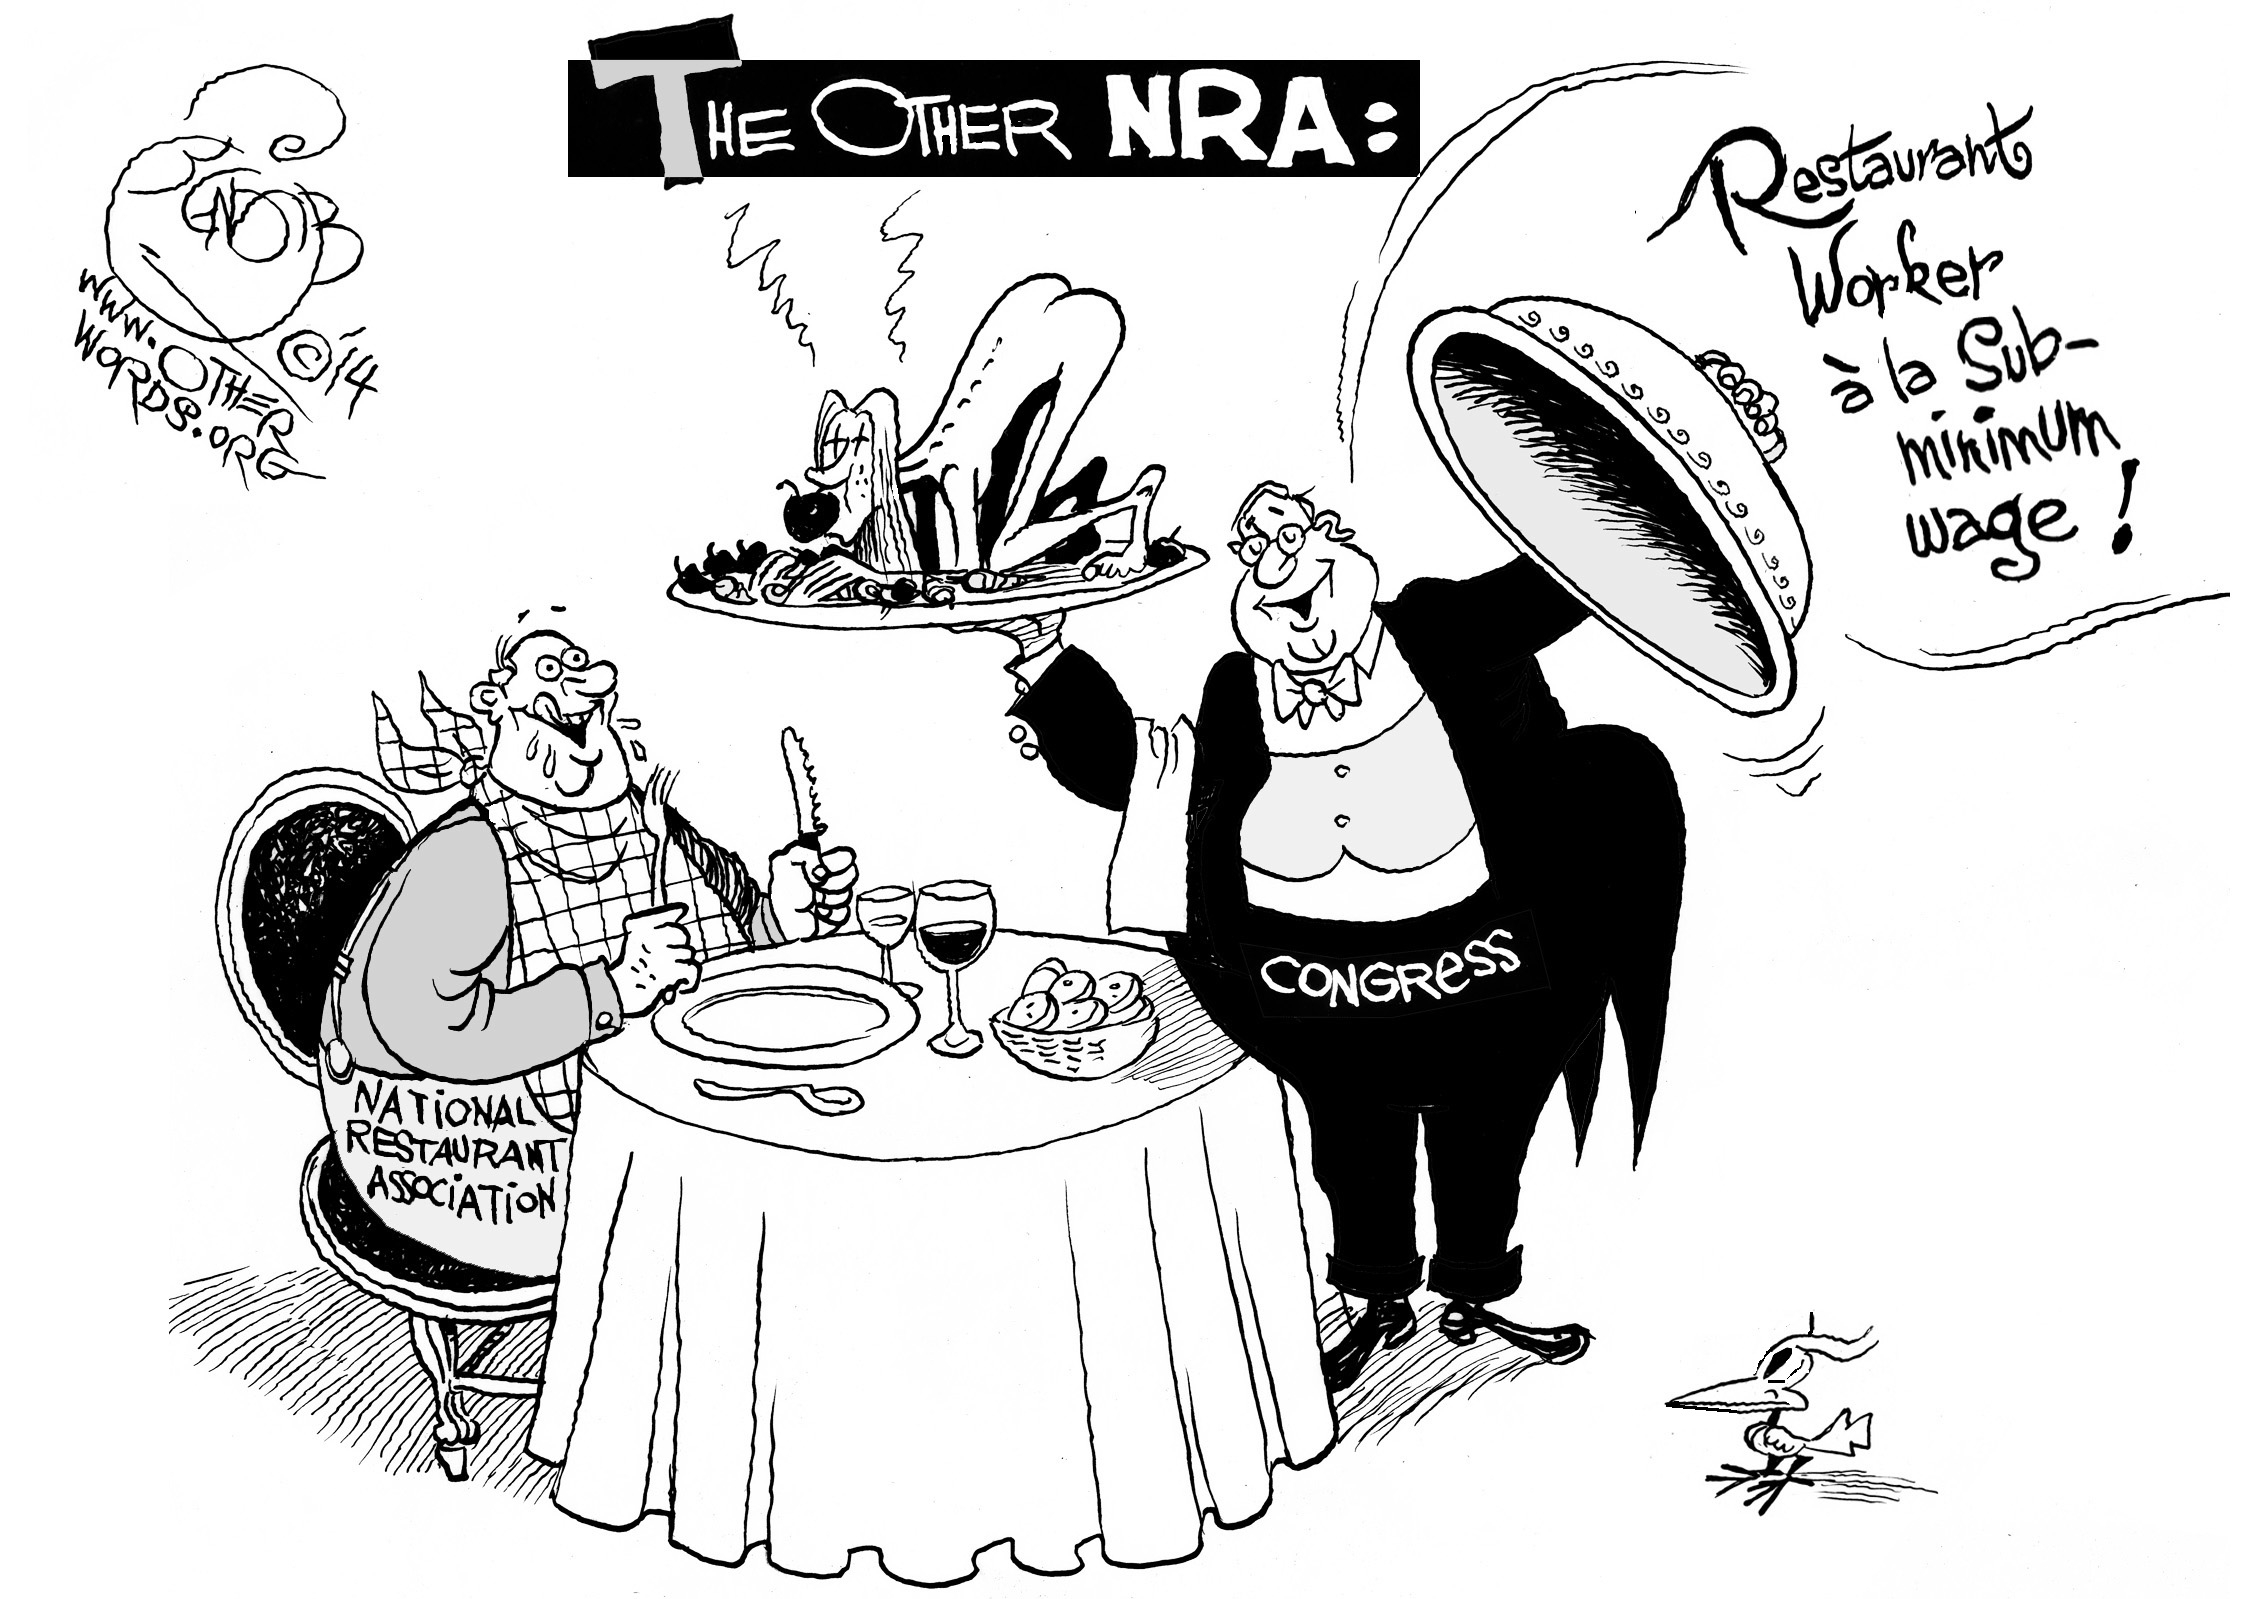 When Congress Serves The Other Nra